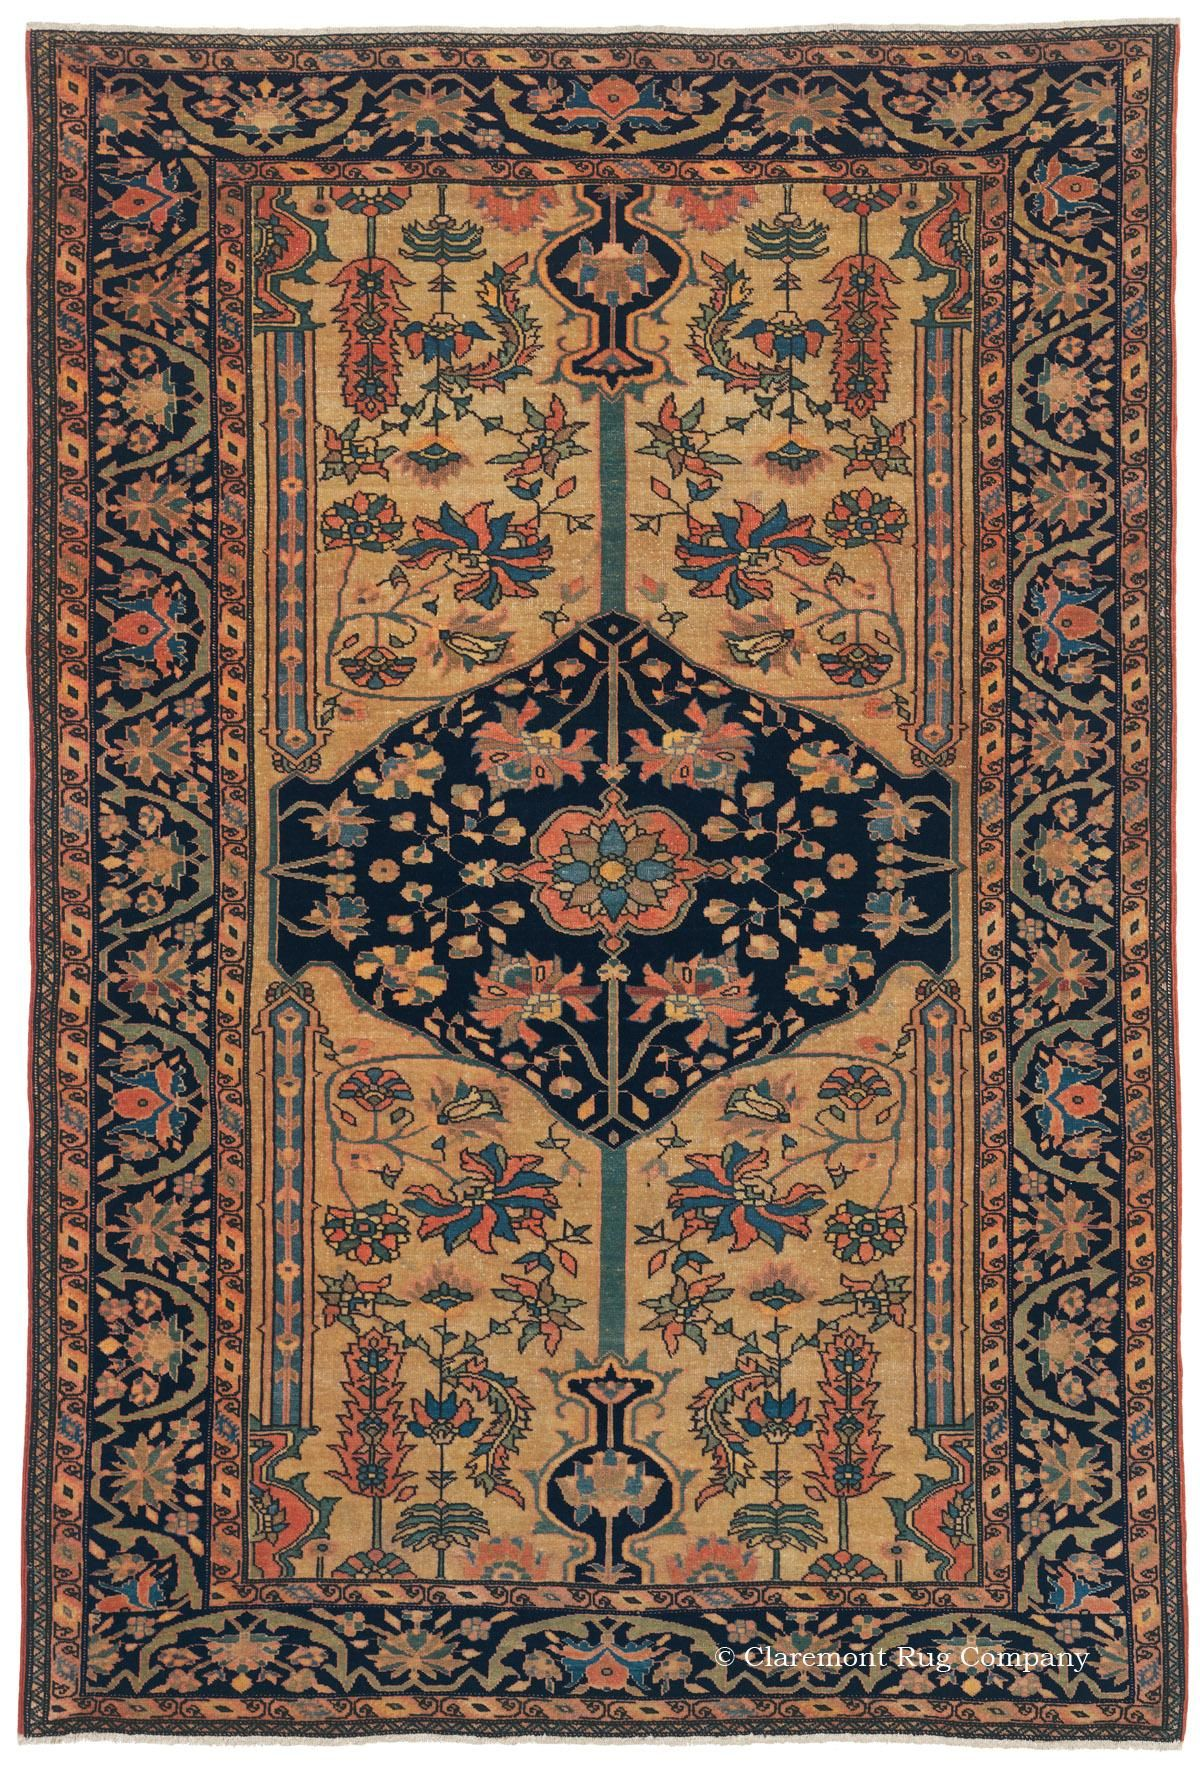 Ferahan (SOLD), 3ft 4in x 4ft 10in, 3rd Quarter, 19th Century.   Impassioned 19th century Persian master weavers occasionally wove mat-size rugs as artistic studies or personal gifts. This well-preserved, diminutive antique Oriental carpet's supremely confident expression, artistic virtuosity and superb craftsmanship all point to such an origin. Particularly distinguishing it is the unique golden apricot dye that was used for the color of the background.